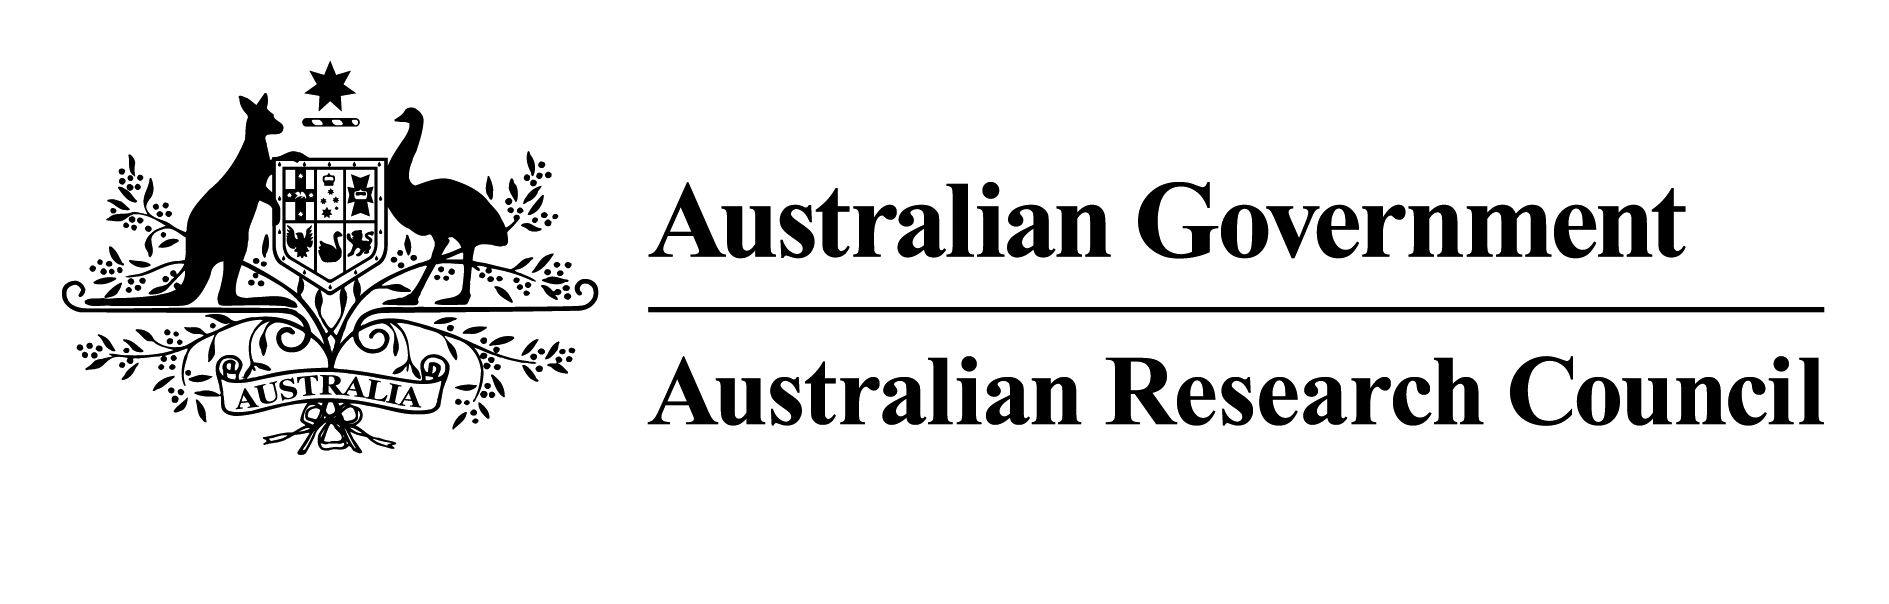 Image result for australian research council logo png